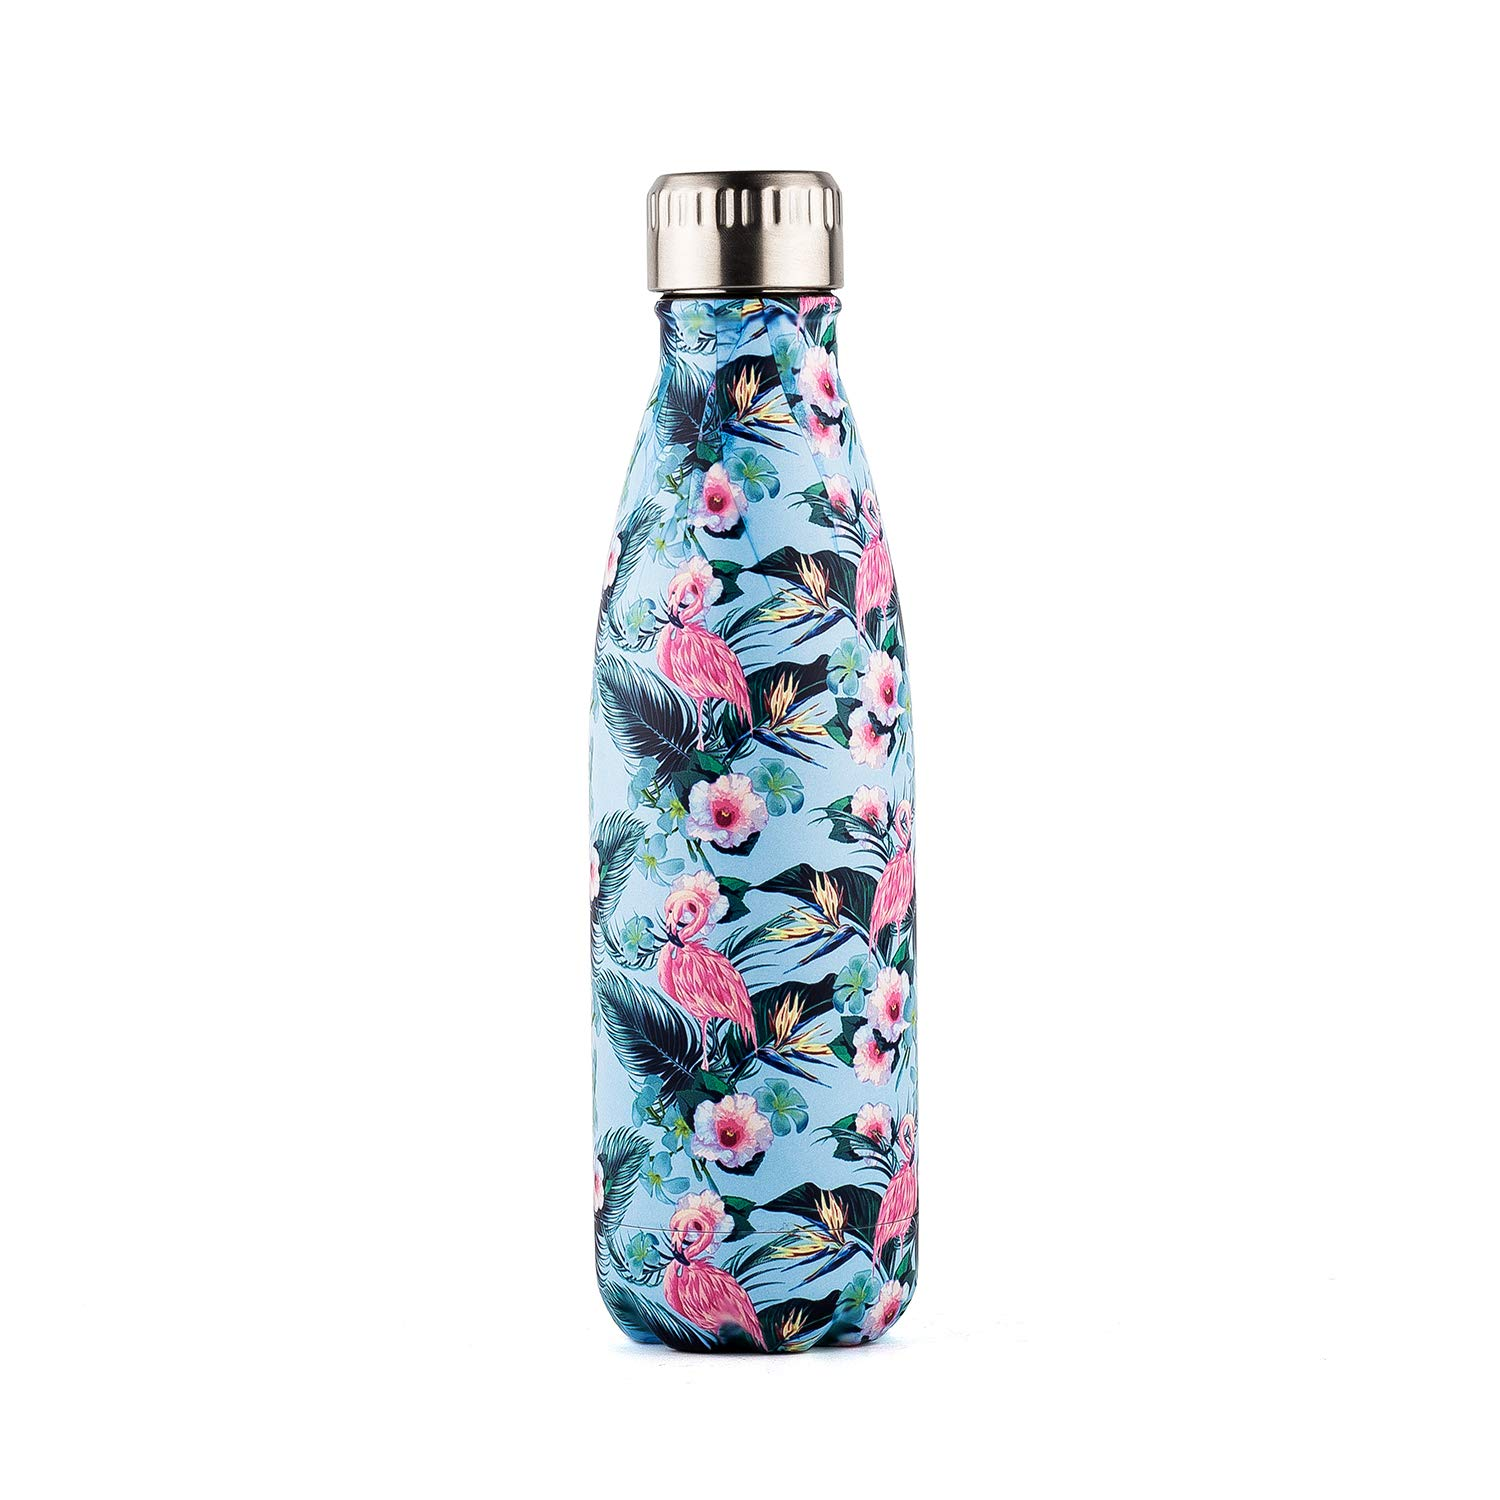 DOKIO 17 oz Painting Insulated Sports Water Bottle for Drinking Double Stemless Stainless Steel Vacuum Flask Thermos Travel Mug for Outdoor Sporting Camping for Ice Hot Drink